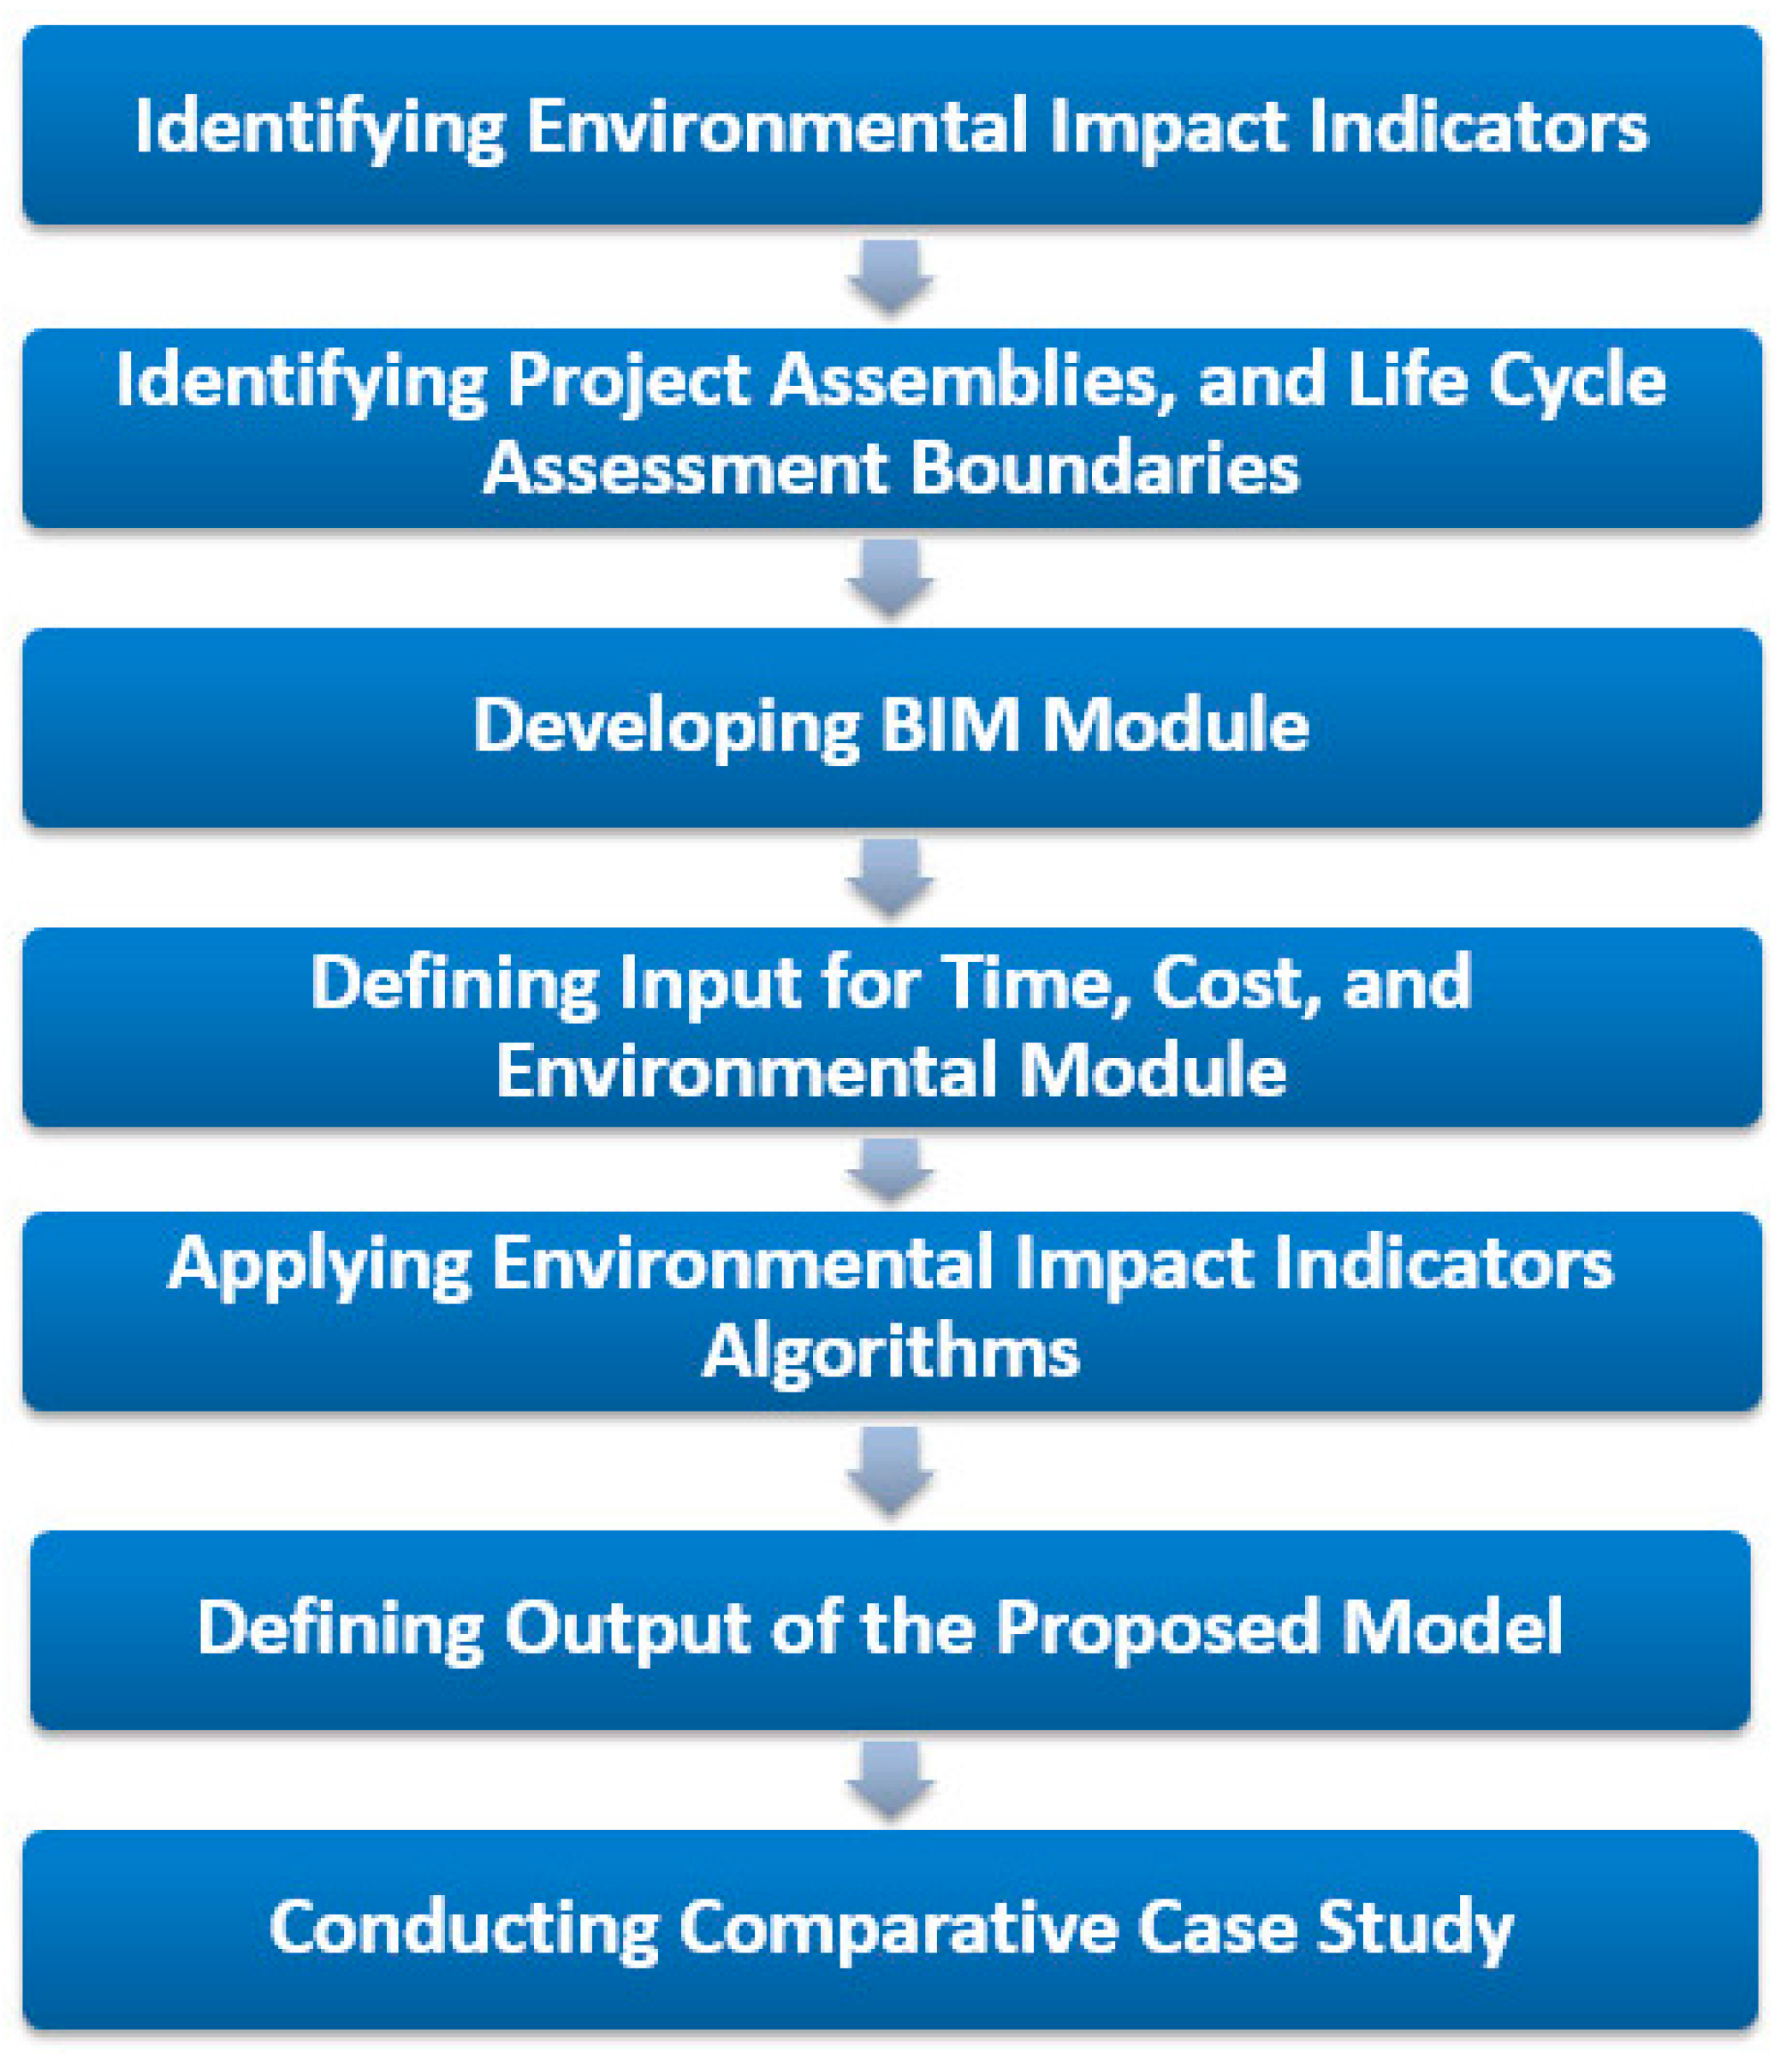 sustainability in construction and environmental impact of the construction industry Companies' sustainability information regulation may be necessary in the near future keywords: sustainability indicators, construction companies, economic, environmental and social performance, sustainabil- ity report 1 introduction the construction industry can have significant impacts in all dimensions of sustainability.